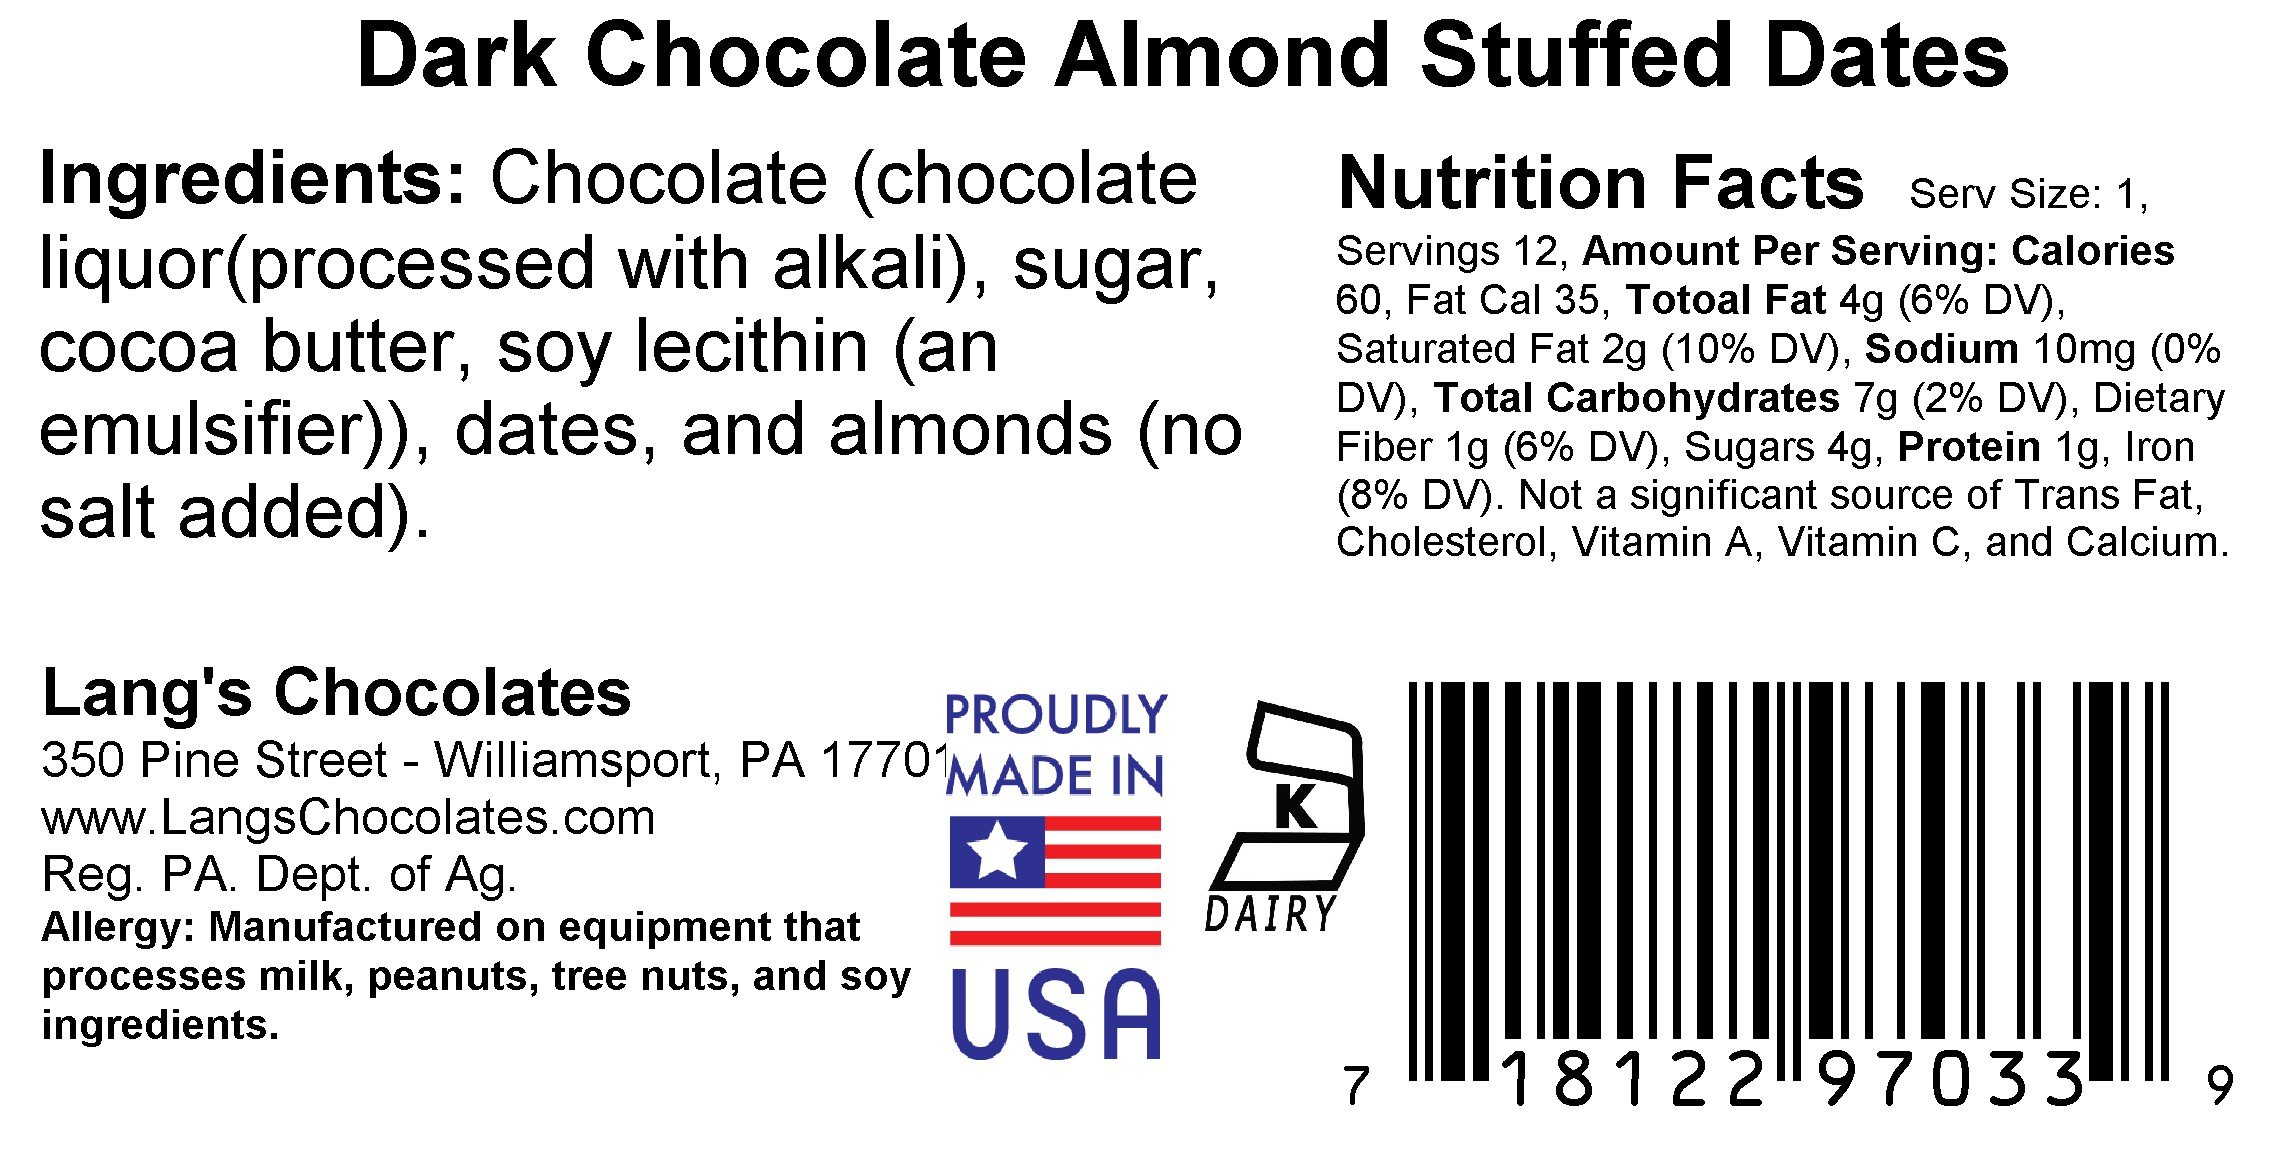 Two Boxes of 12pc Almond Stuffed Dates in Dark Chocolate